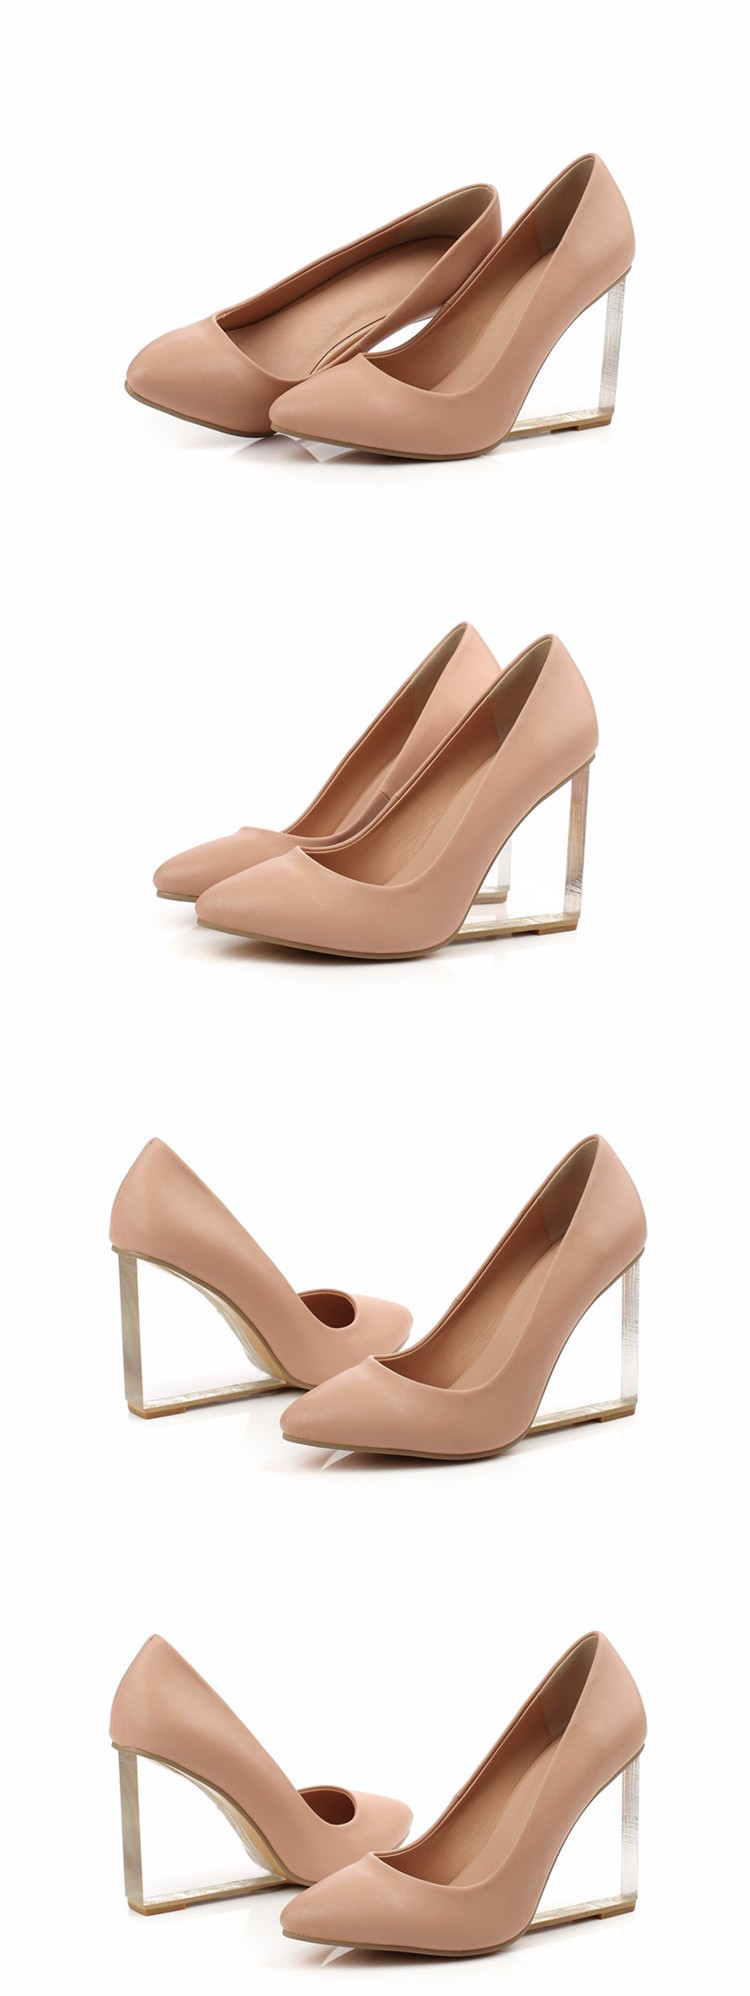 Big Size 33-42 NEW 2017 Women Shoes Genuine leather pointed toe High-heeled shoes Transparent wedges lady high heels Women Pumps